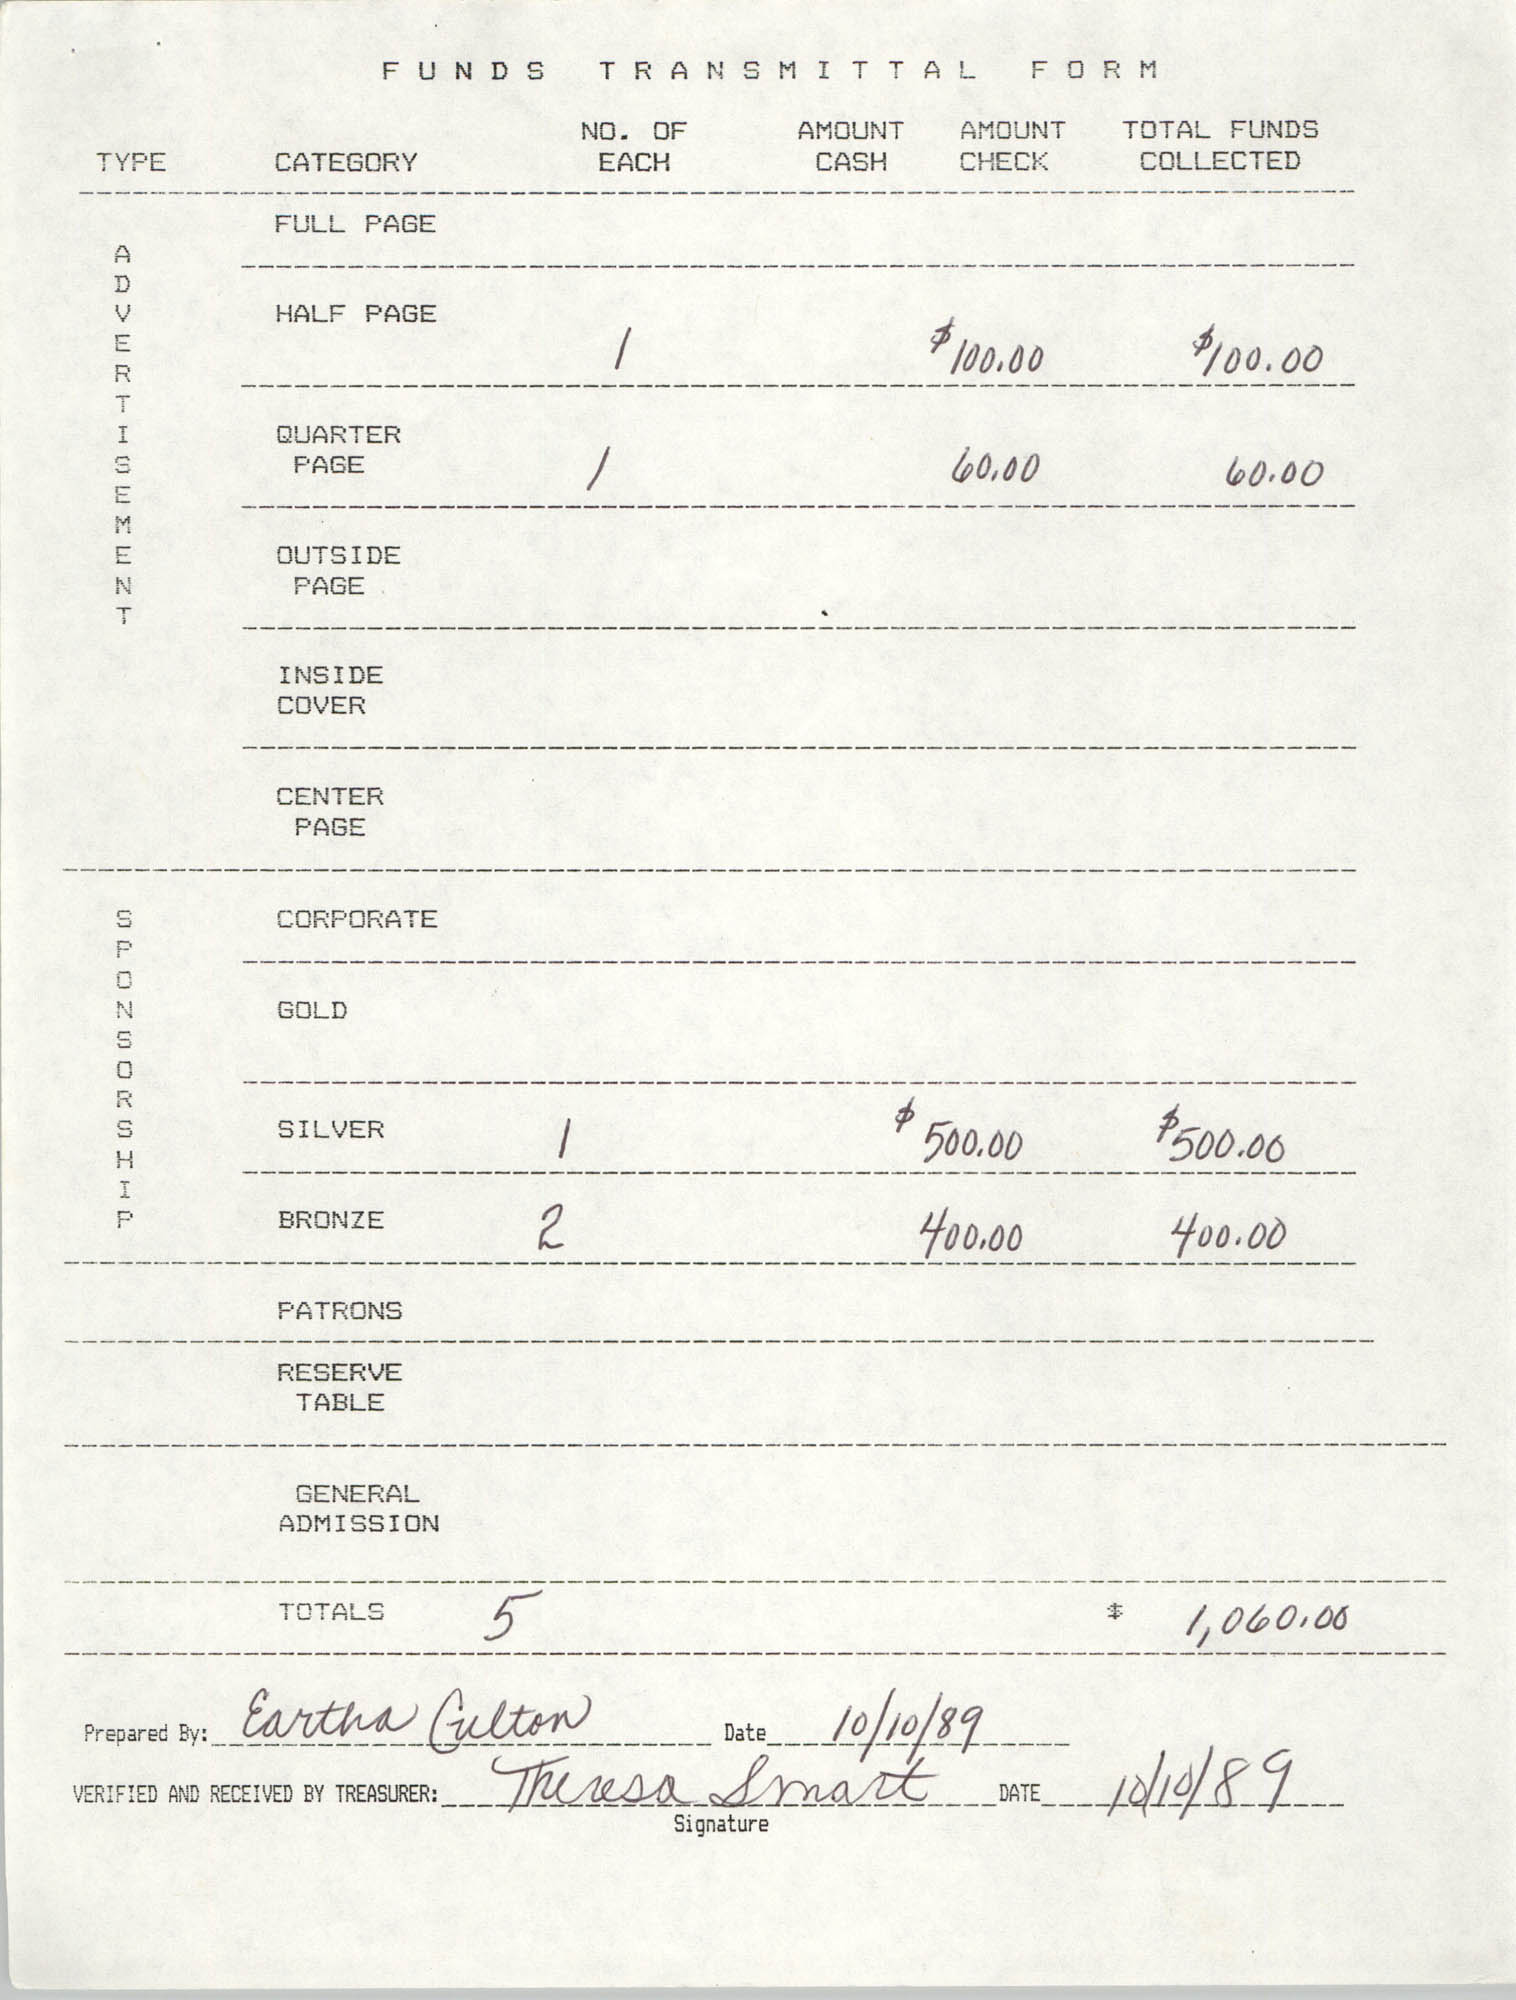 Funds Transmittal Form, E. Culton and Theresa Smart, October 10, 1989